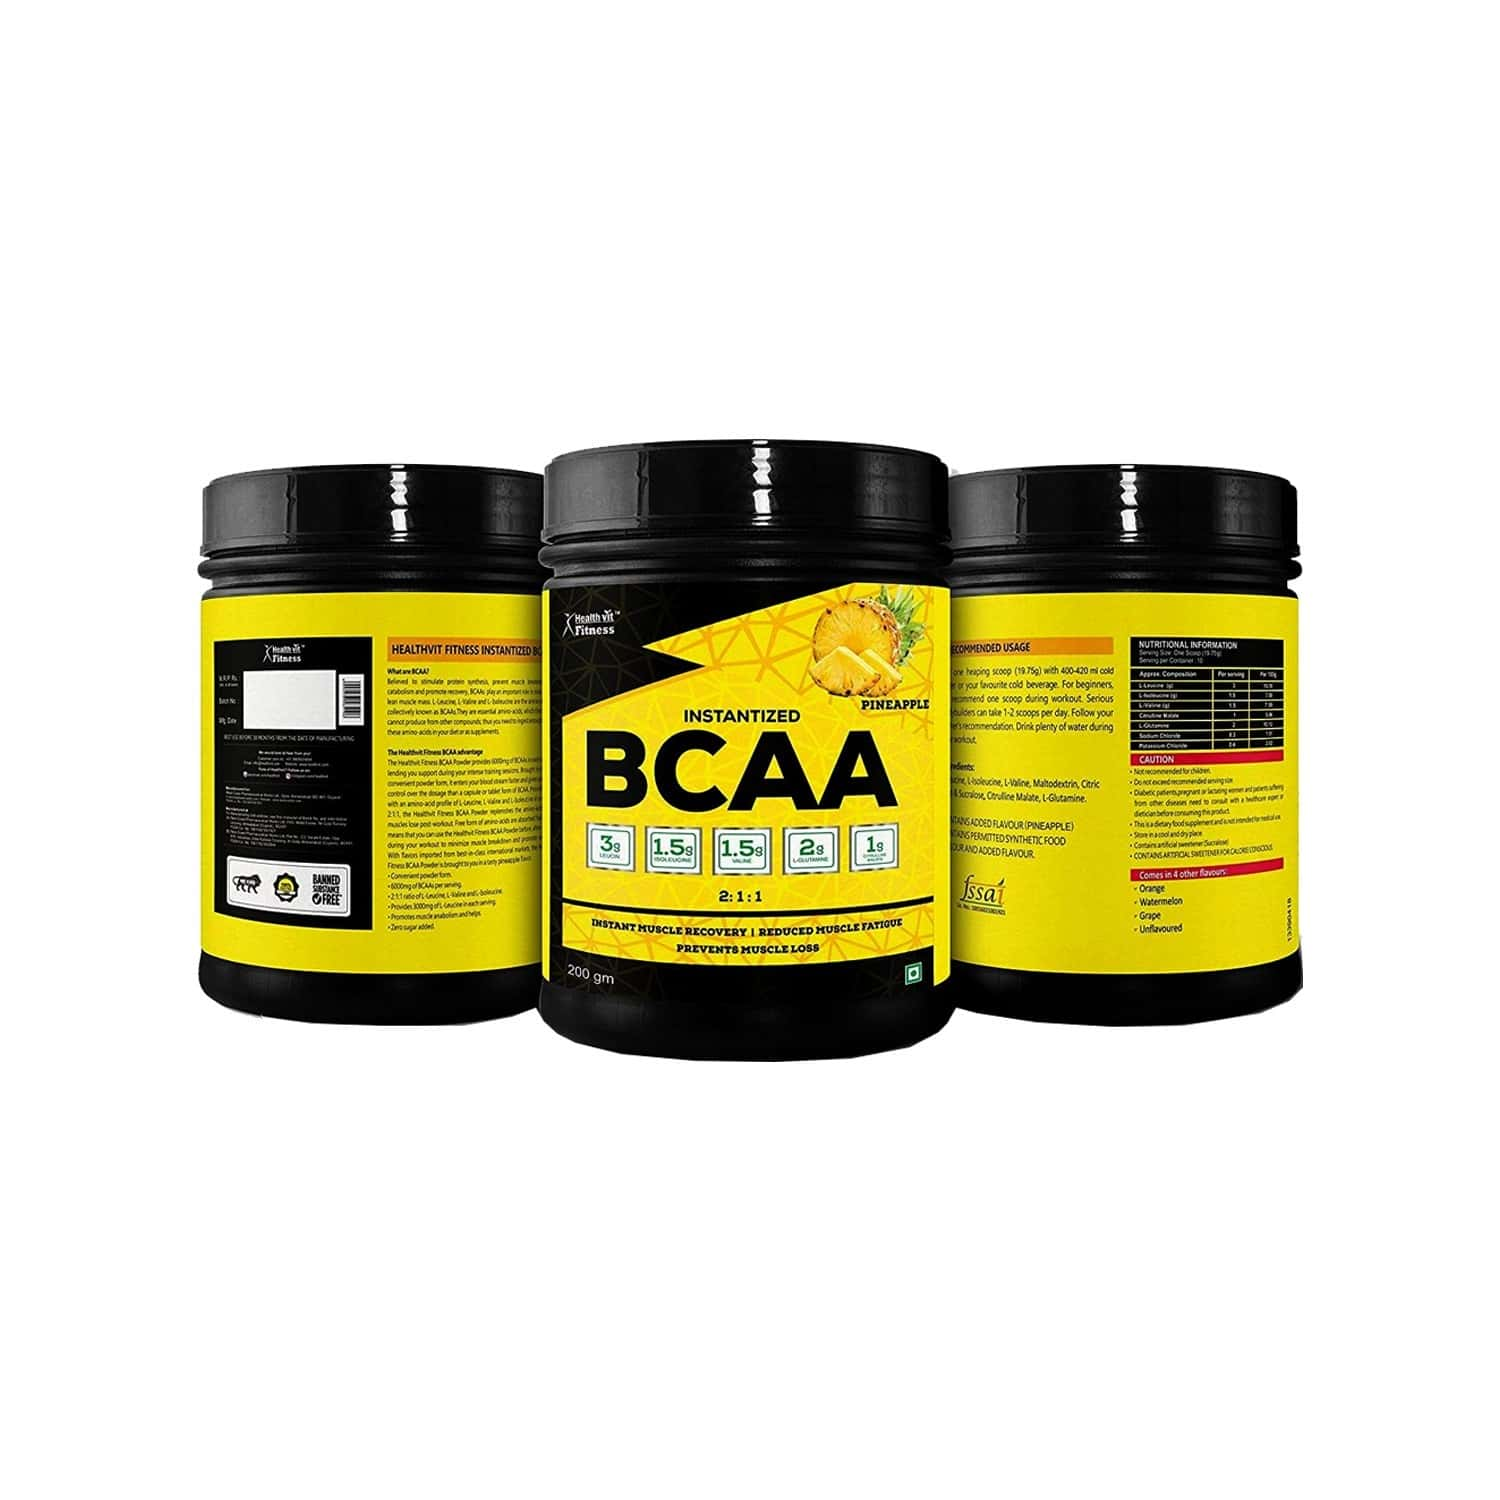 Healthvit Fitness Bcaa 6000mg 2:1:1 Powder With L-glutamine & L-citrulline Malate, (10 Servings) Pineapple Flavour - 200g